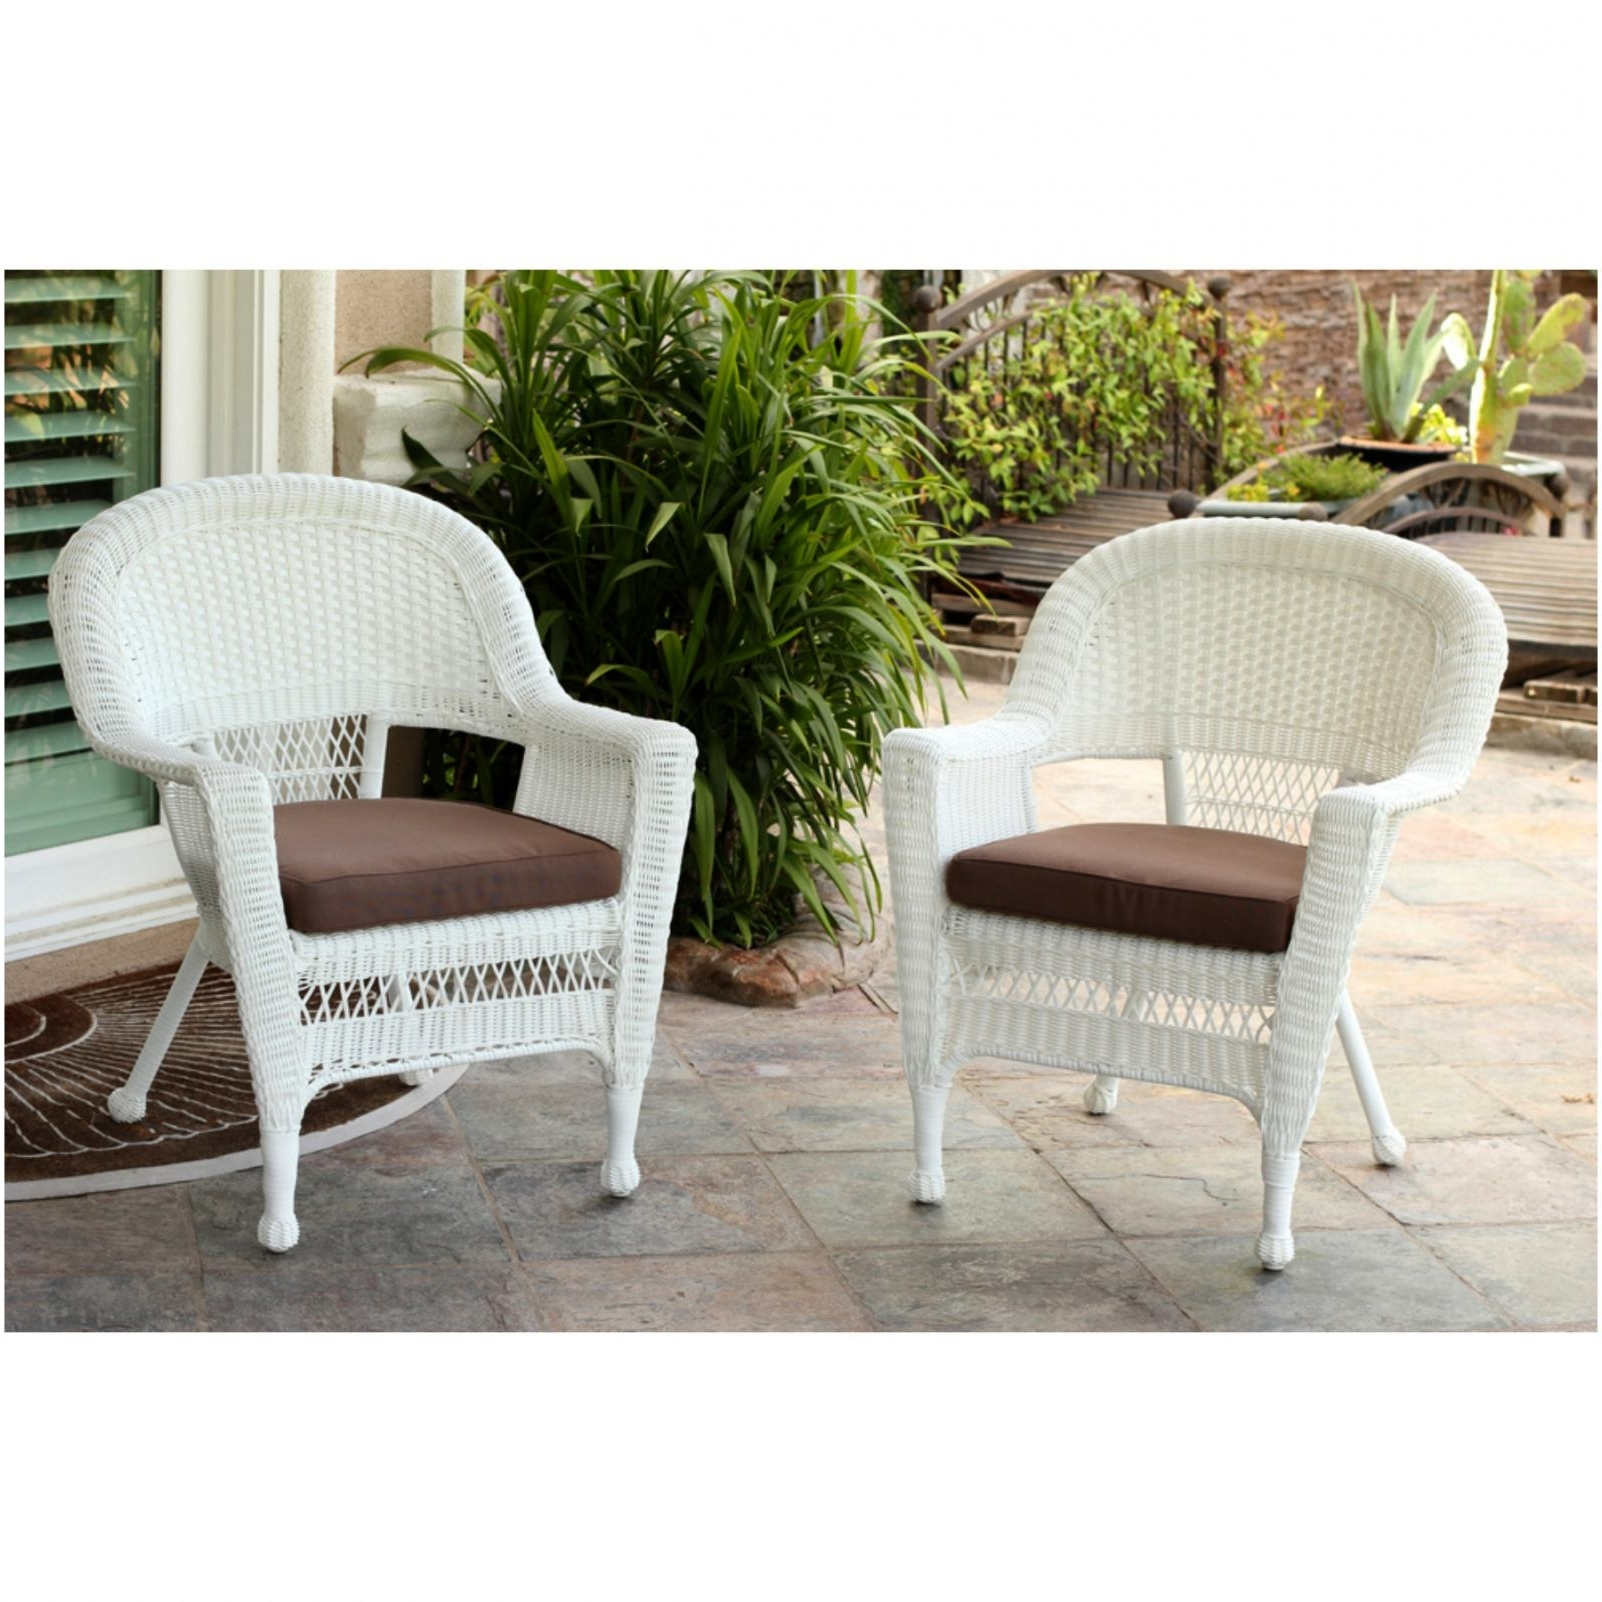 Kohl's Patio Conversation Sets With Regard To Most Popular Secrets Kohls Outdoor Furniture Patio Savrsenizgled Com (View 3 of 20)